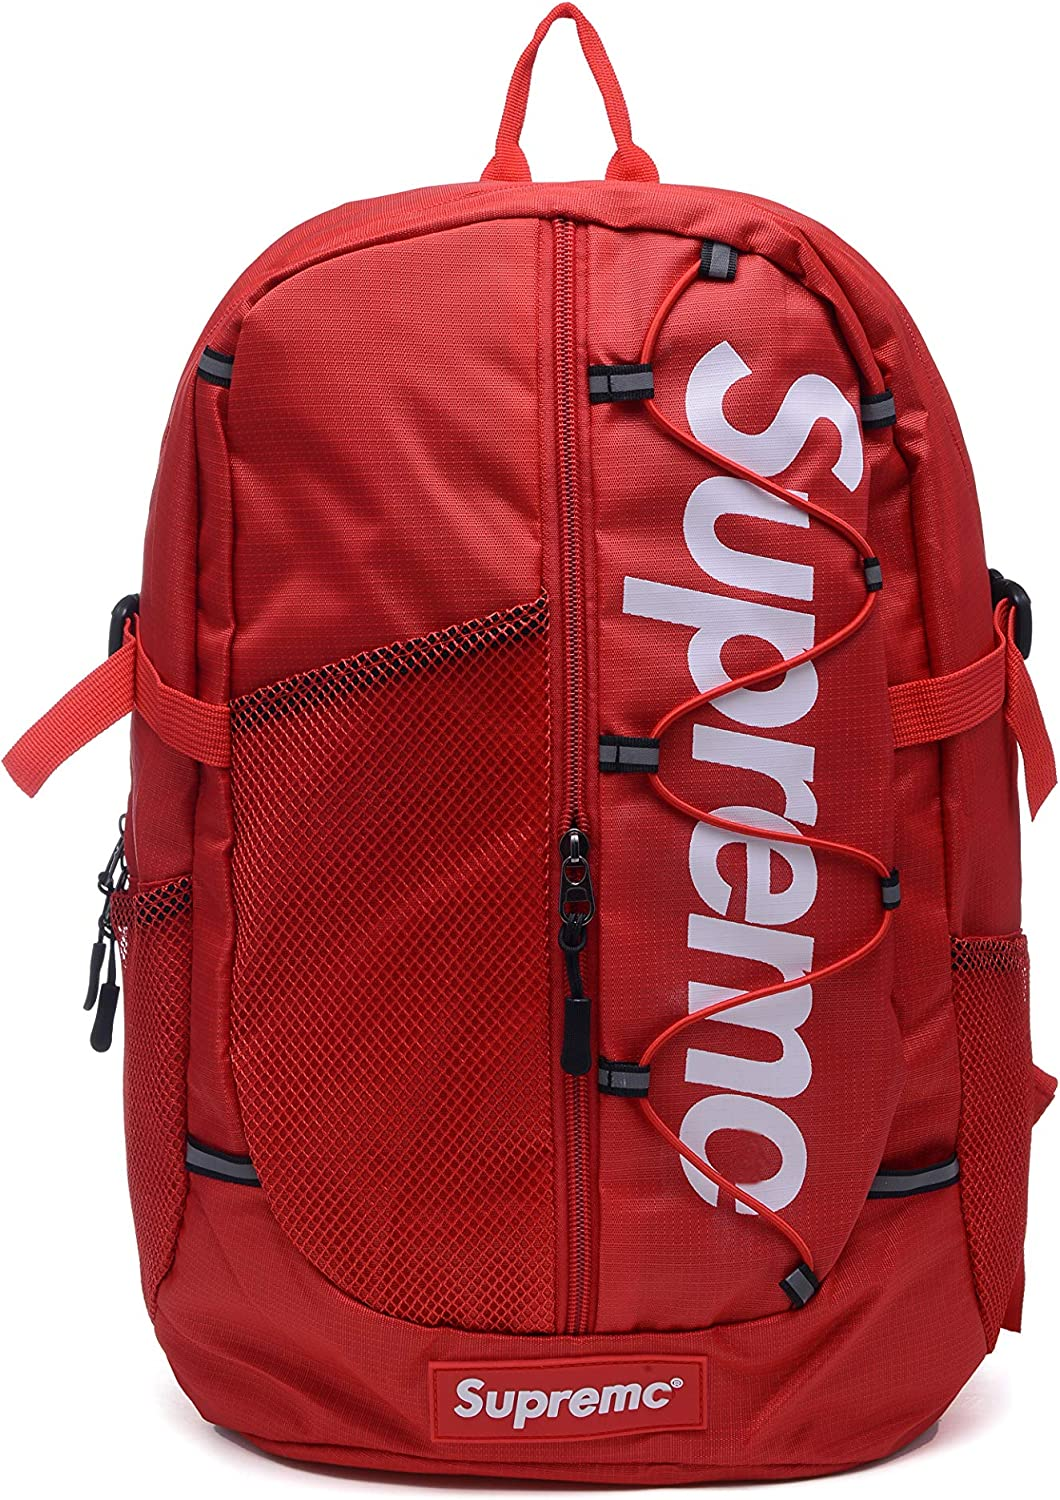 Black Supremes Outdoor Backpack Travel Bag for Gym Sport Hiking Unisex AdultCasual Casual Daypack